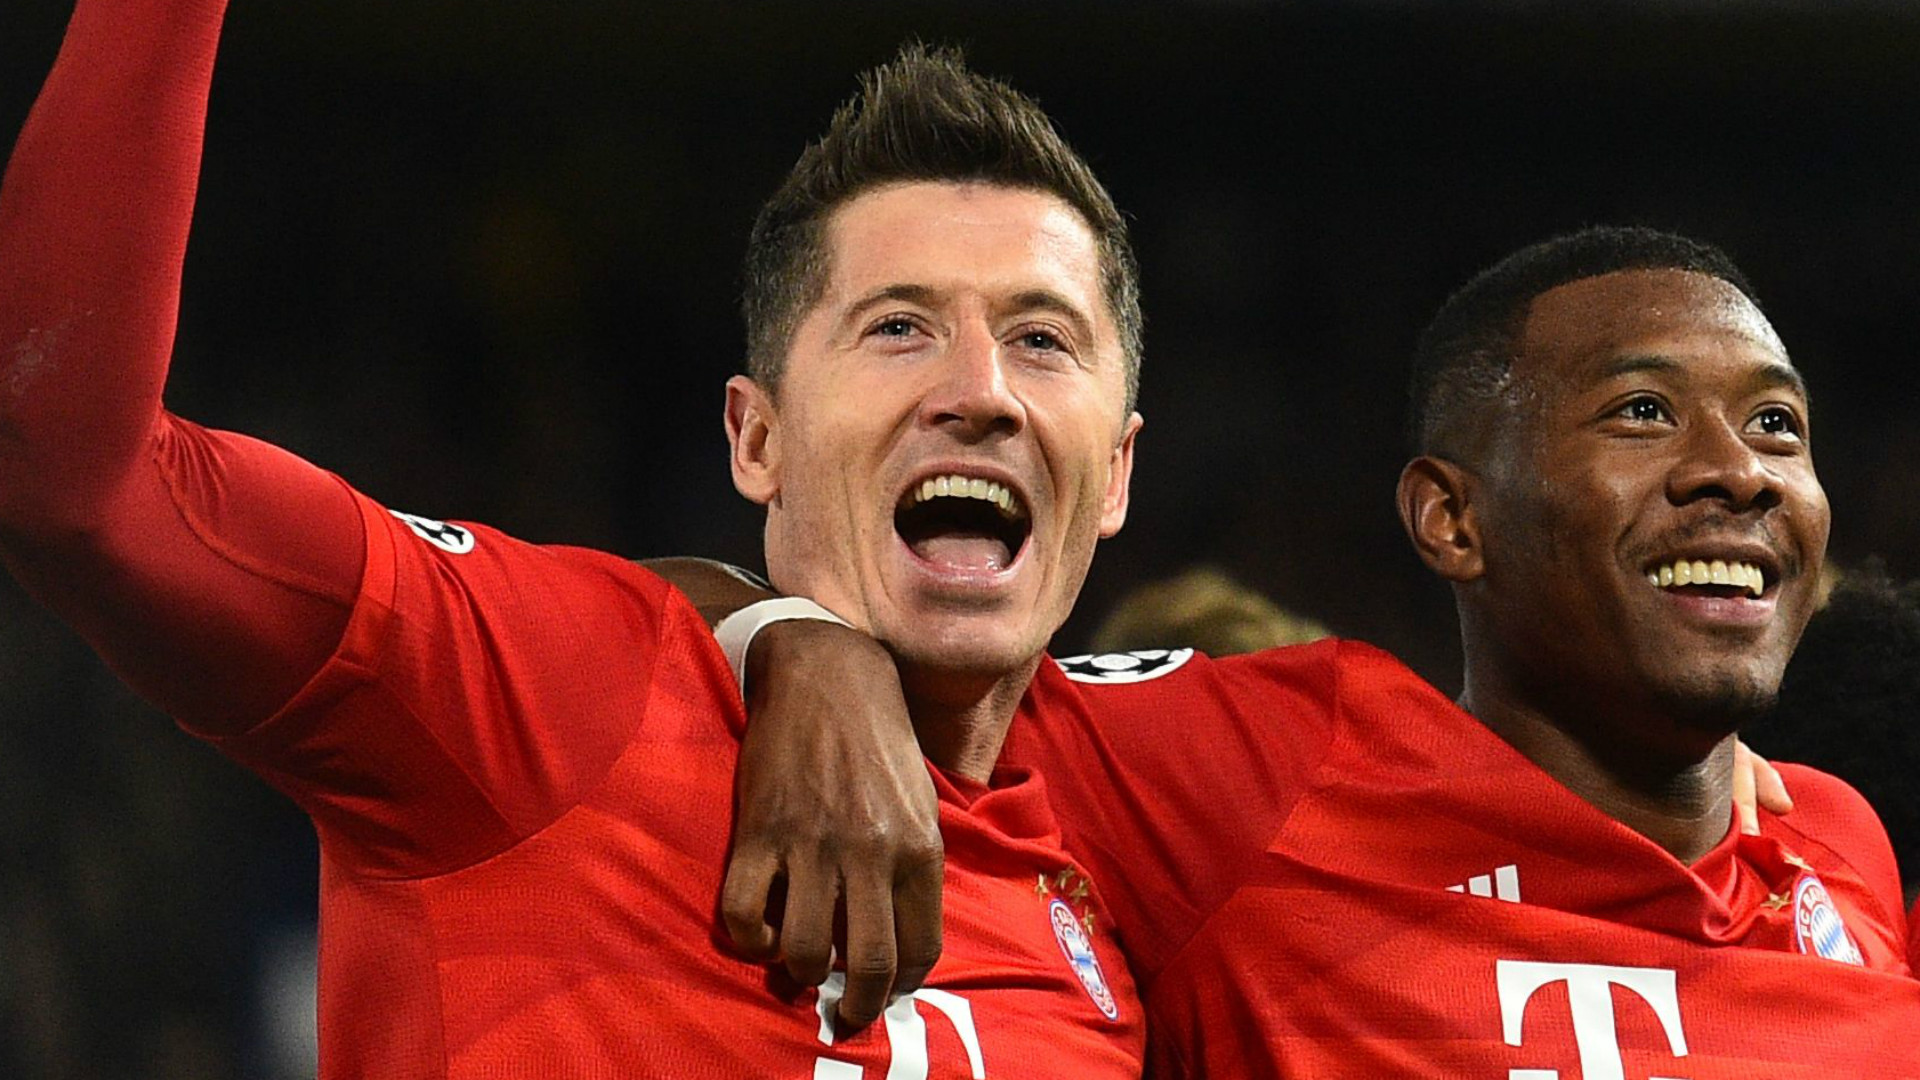 Robert Lewandowski struck twice and set up two more goals as Bayern Munich cruised past Chelsea 4-1 on Saturday to reach the Champions League quarter-finals with a 7-1 aggregate victory and remain on course for a treble of titles. The Bavarians will be on an 18-game winning streak across all competitions as they head into […]